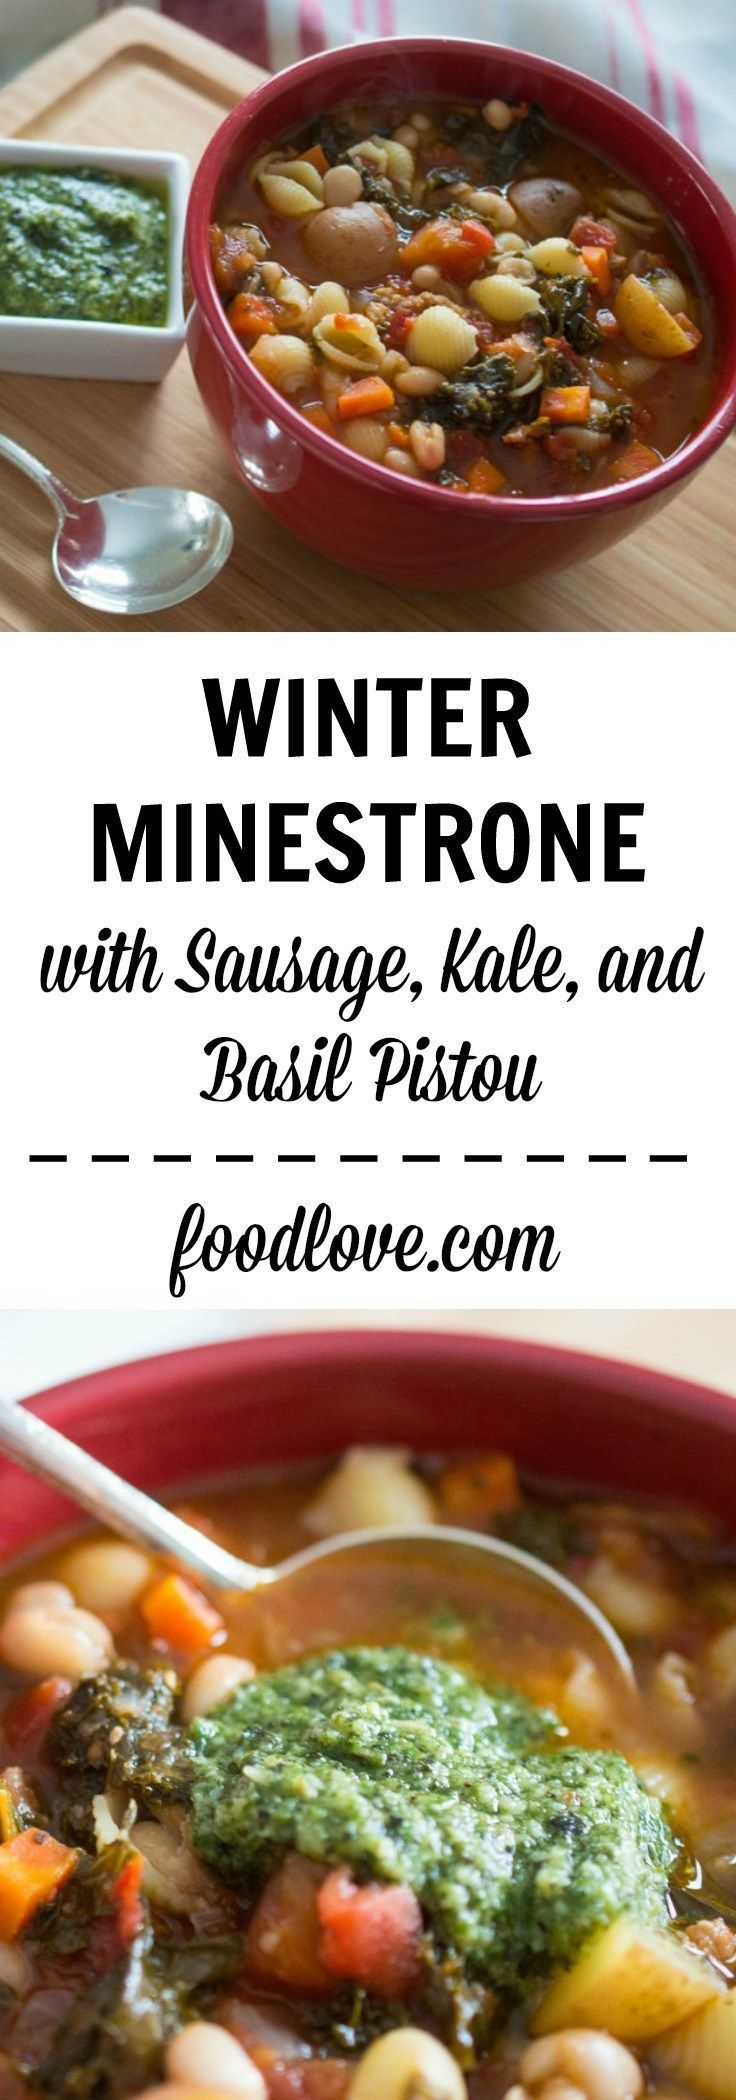 Winter minestrone with sausage, kale, and basil pistou is one of our ...